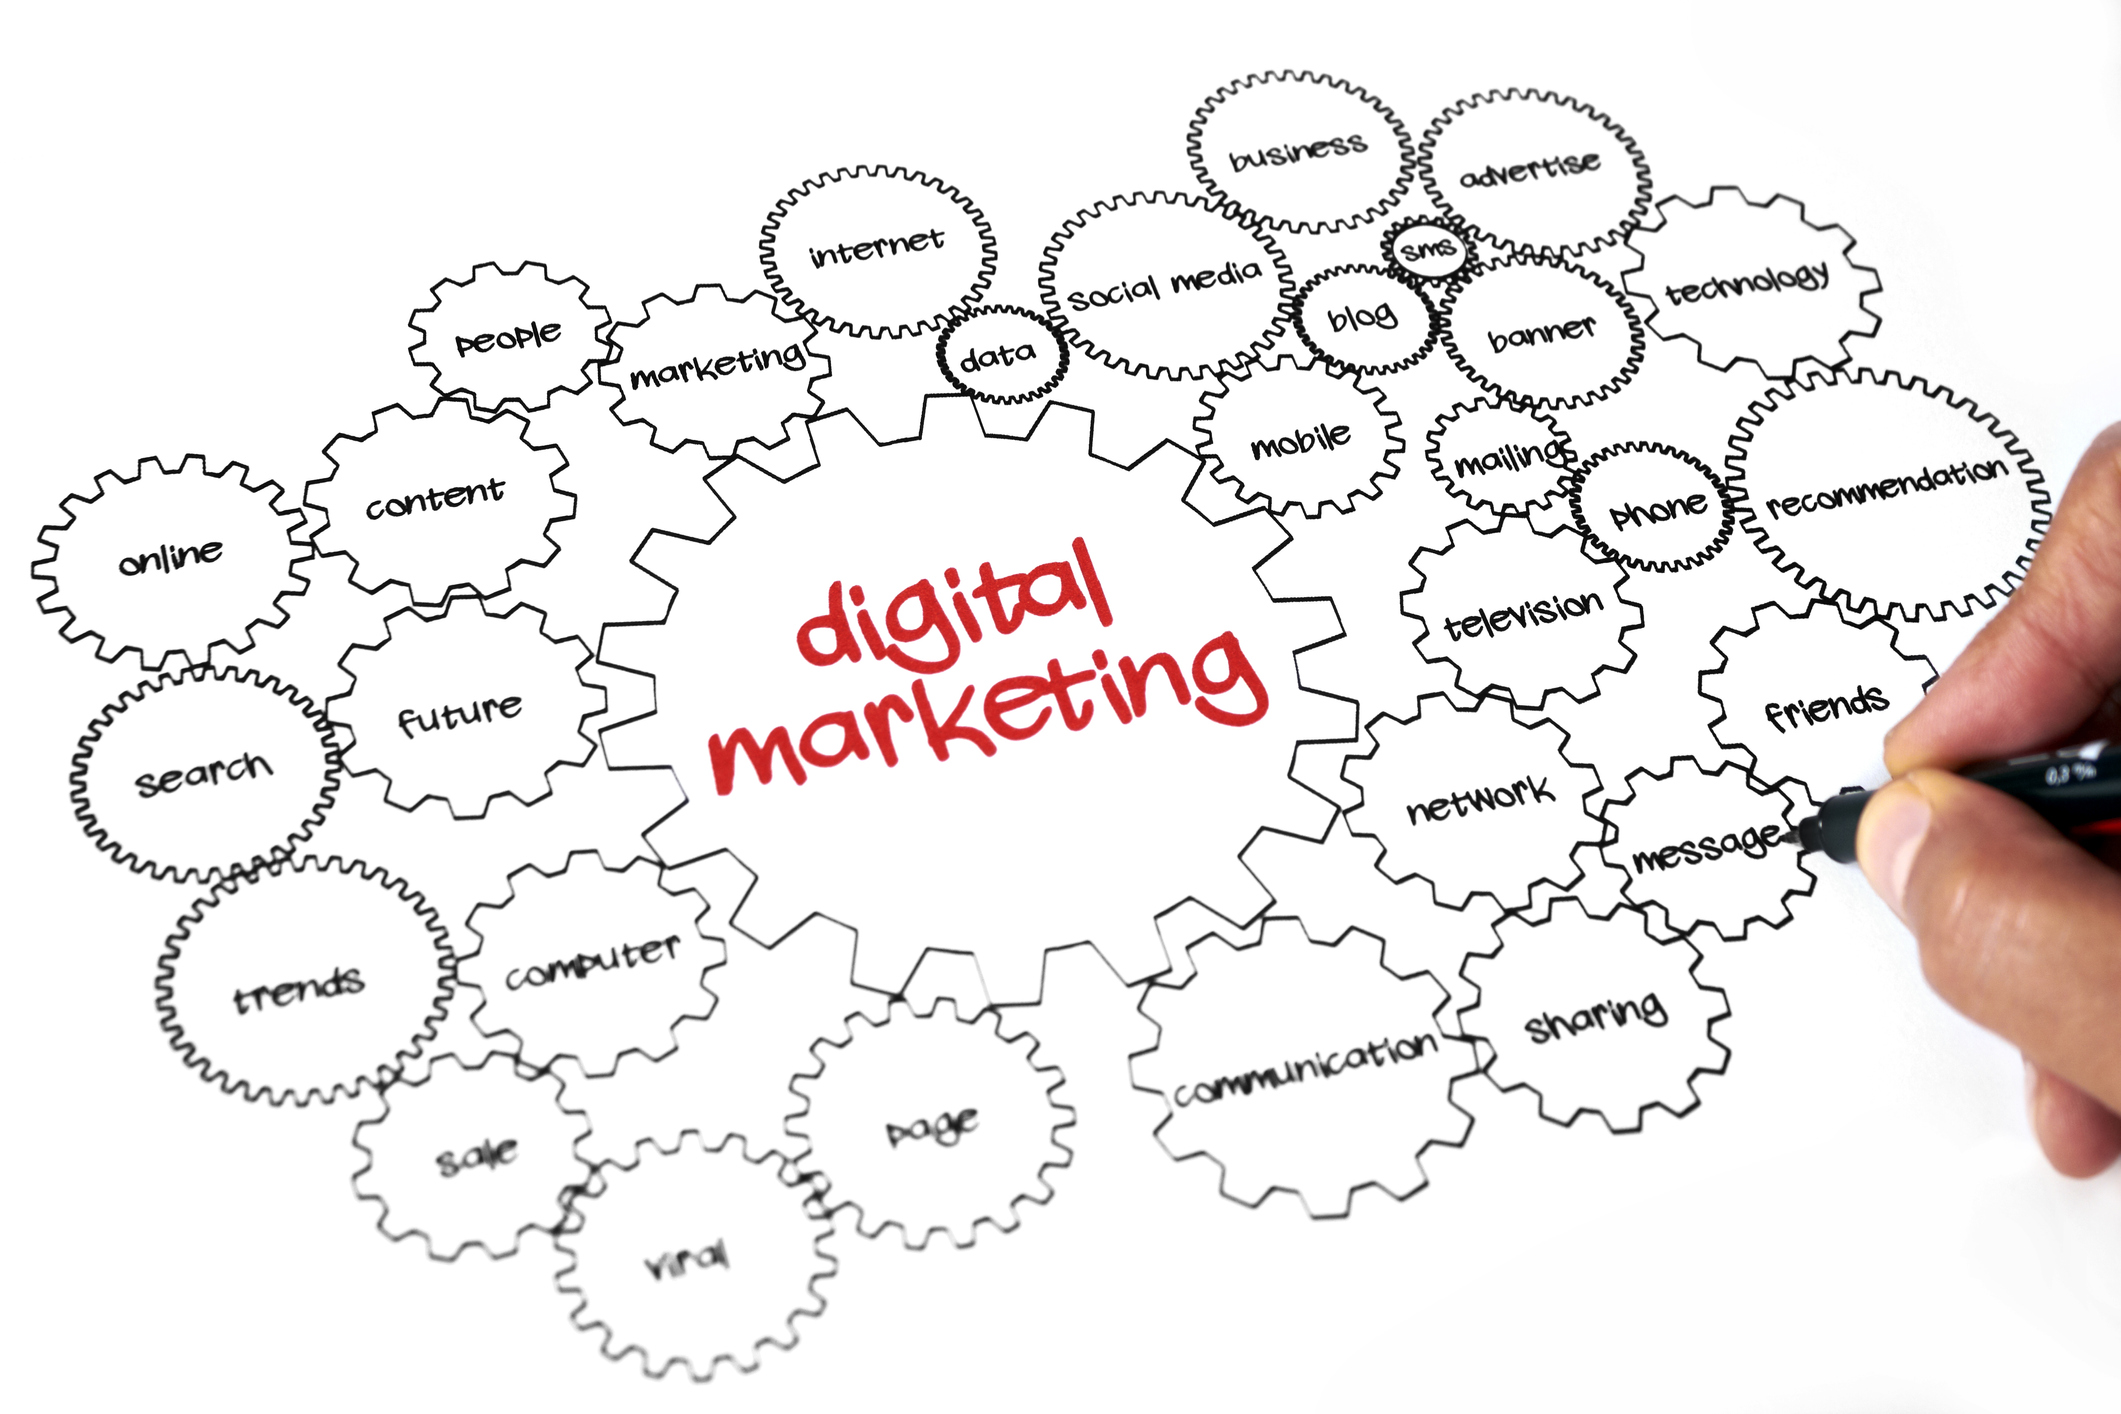 white board with digital marketing written in the center, representing digital marketing for financial advisors